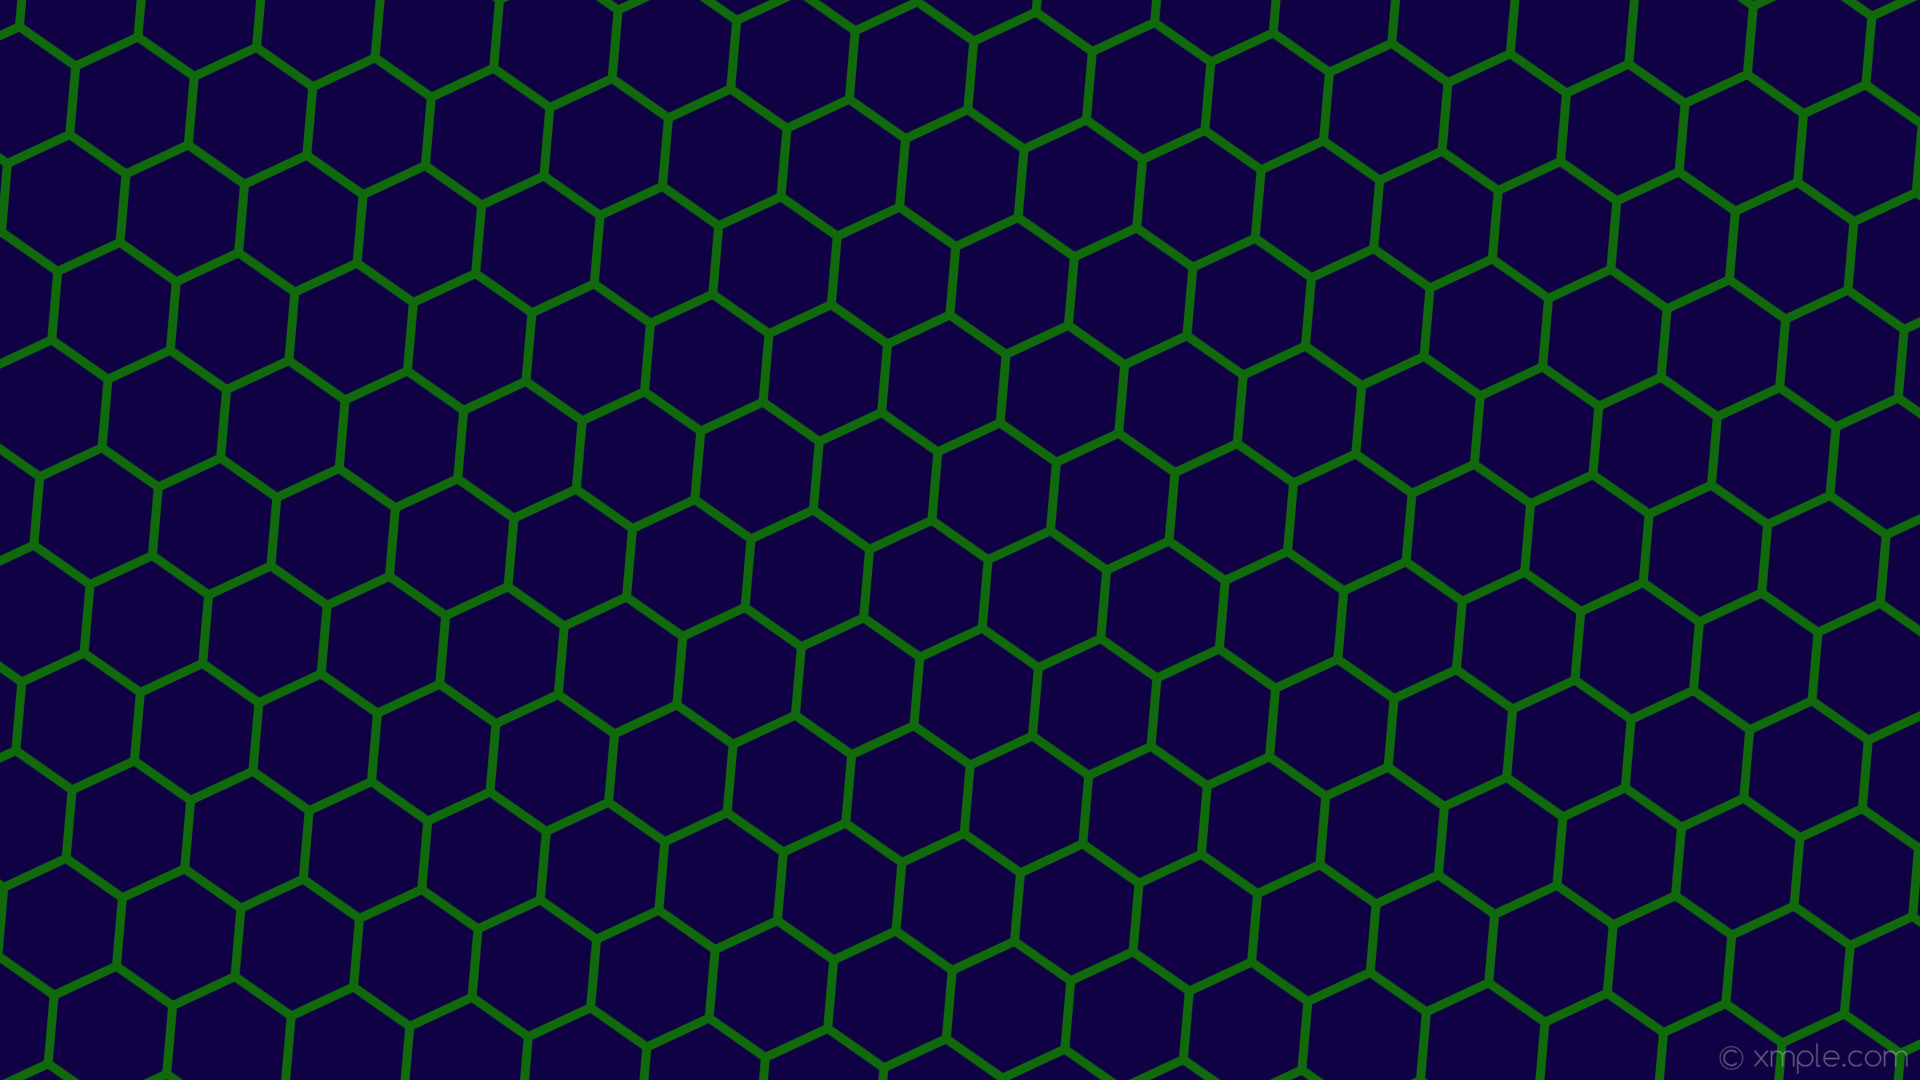 Res: 1920x1080, wallpaper blue honeycomb green hexagon beehive dark blue #100044 #106a0b  diagonal 55° 9px